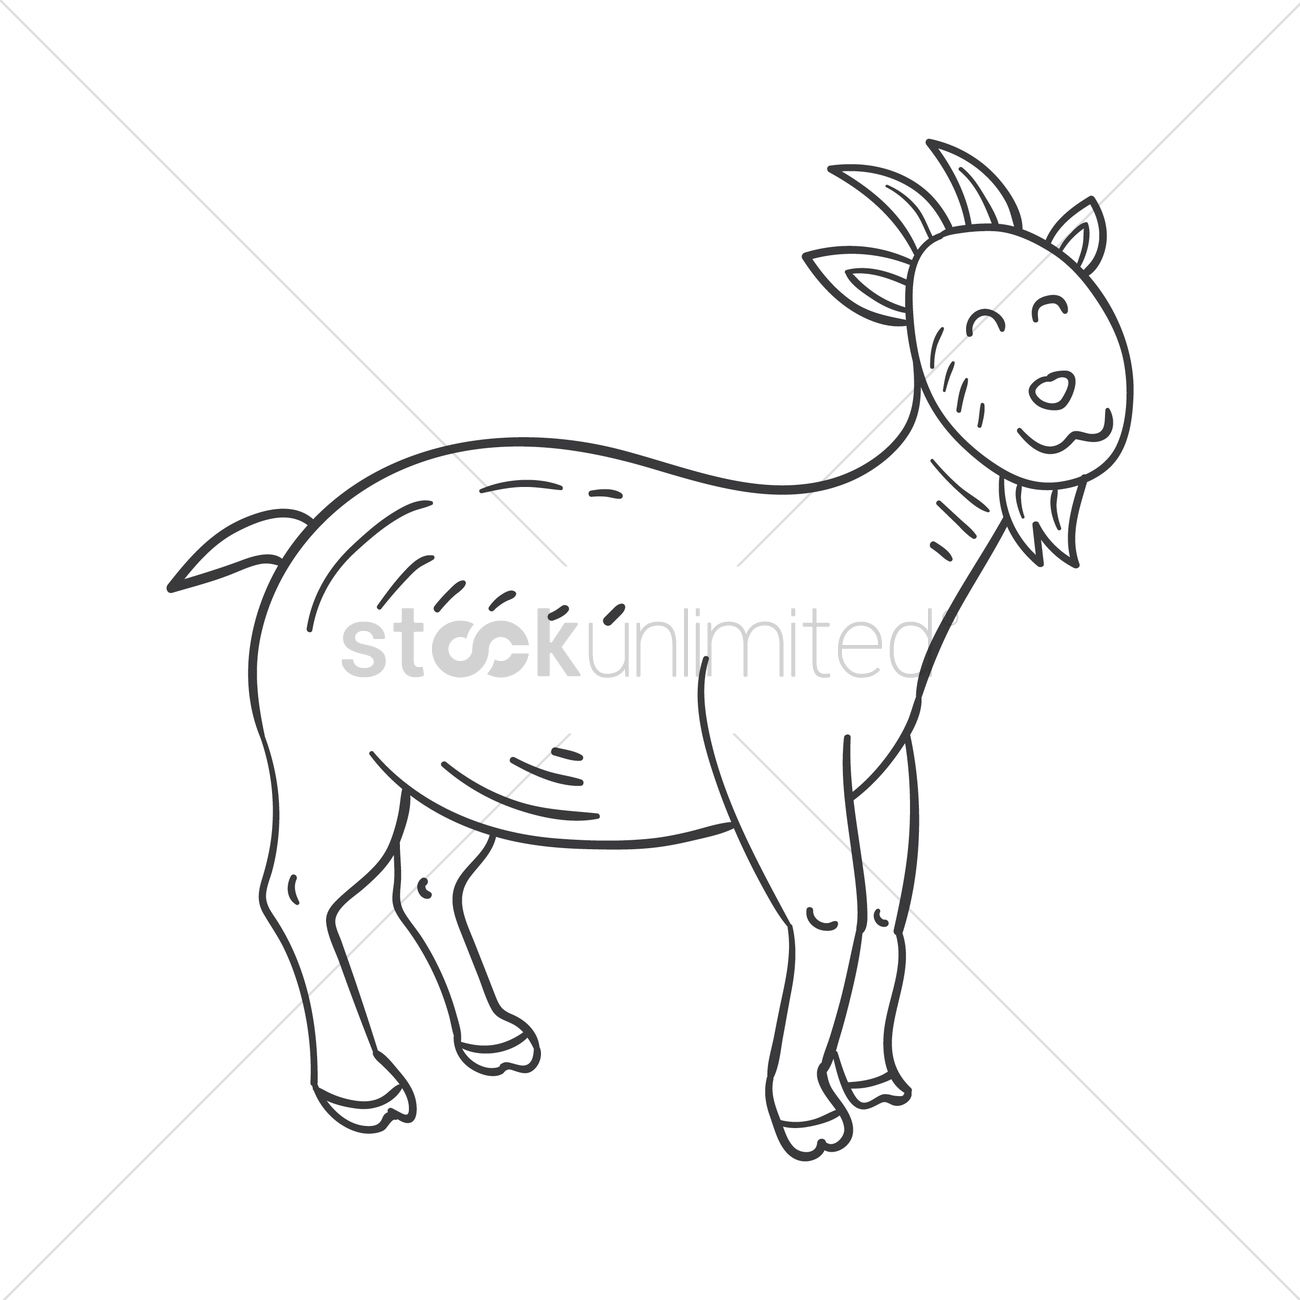 Happy goat Vector Image - 2029142 | StockUnlimited for happy goat drawing  565ane